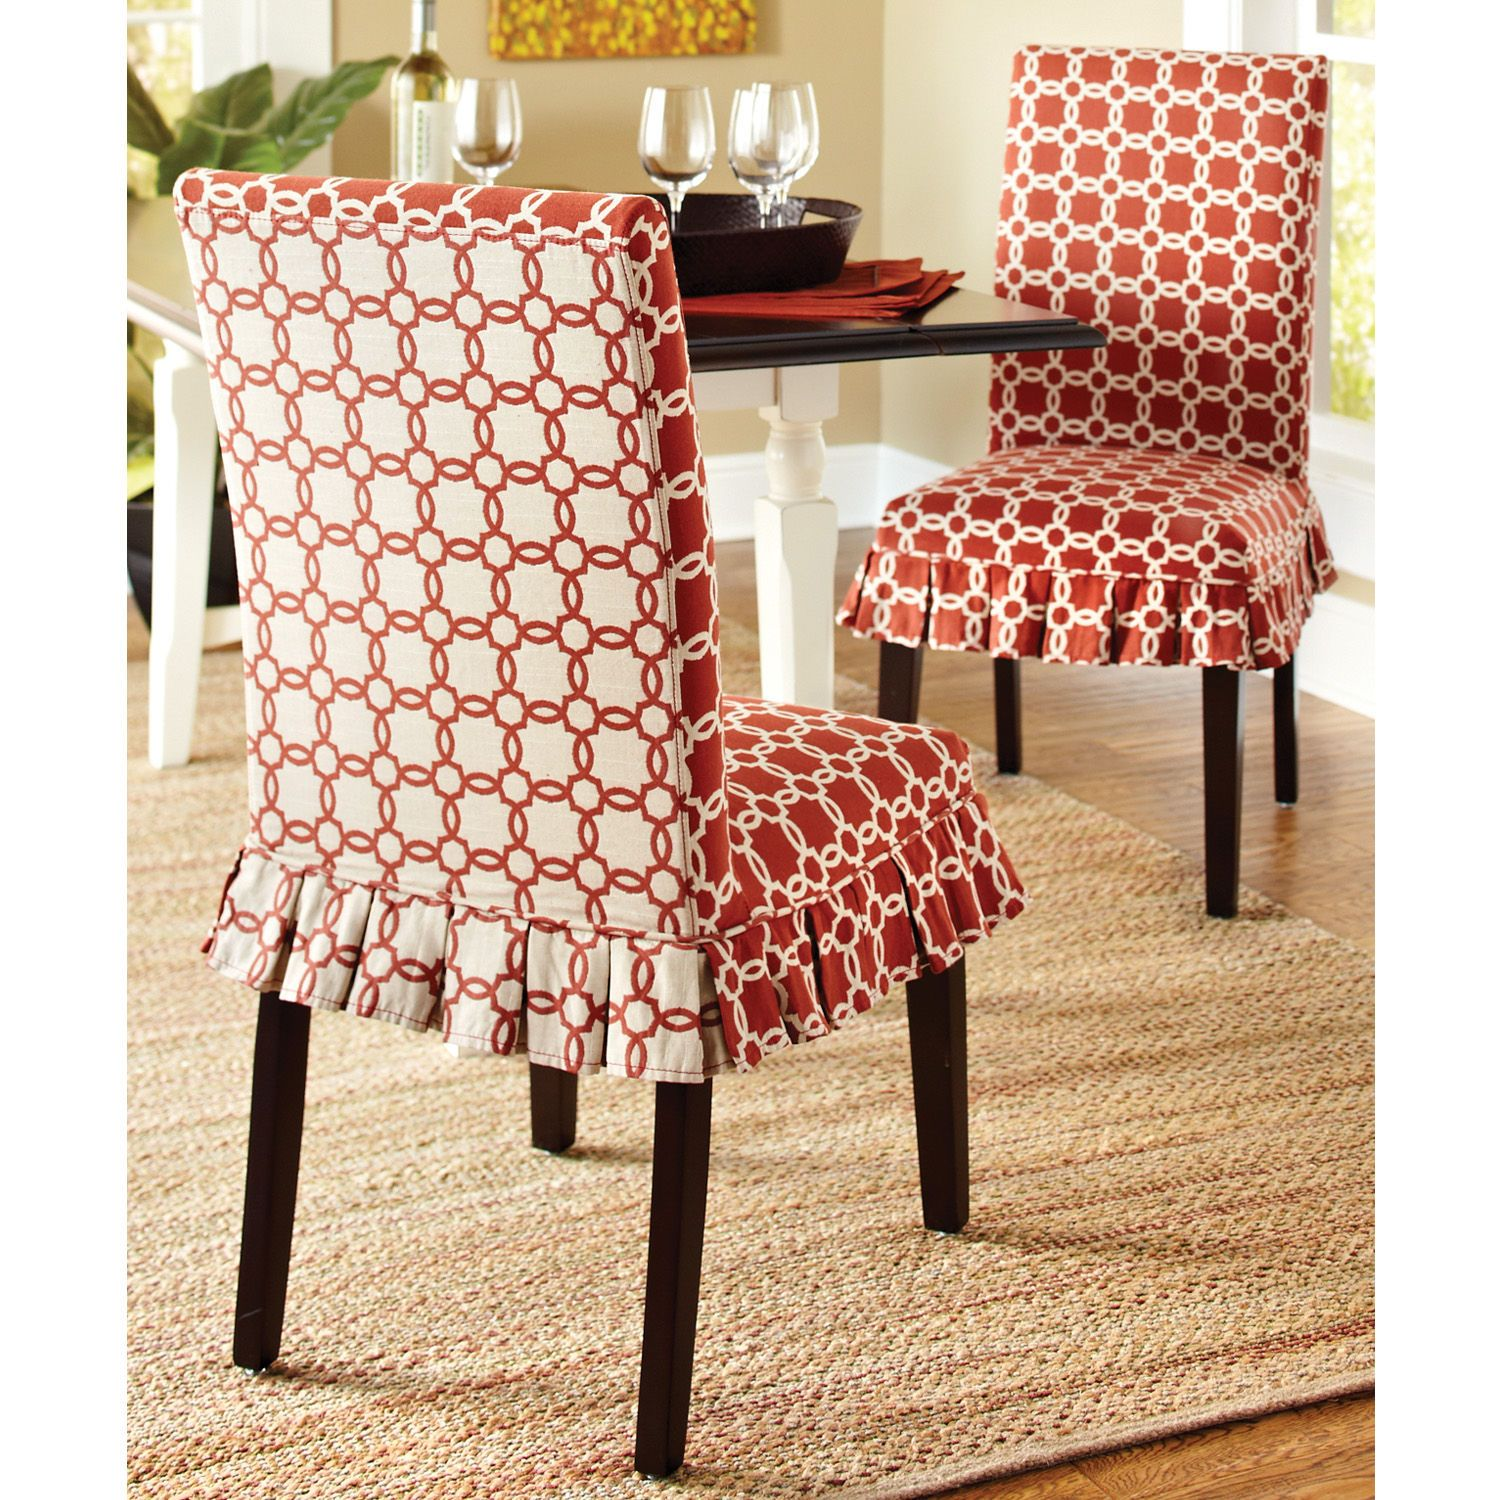 dining room chair leg covers simply elegant and linens how fun are these slipcovers from pier 1 chairs